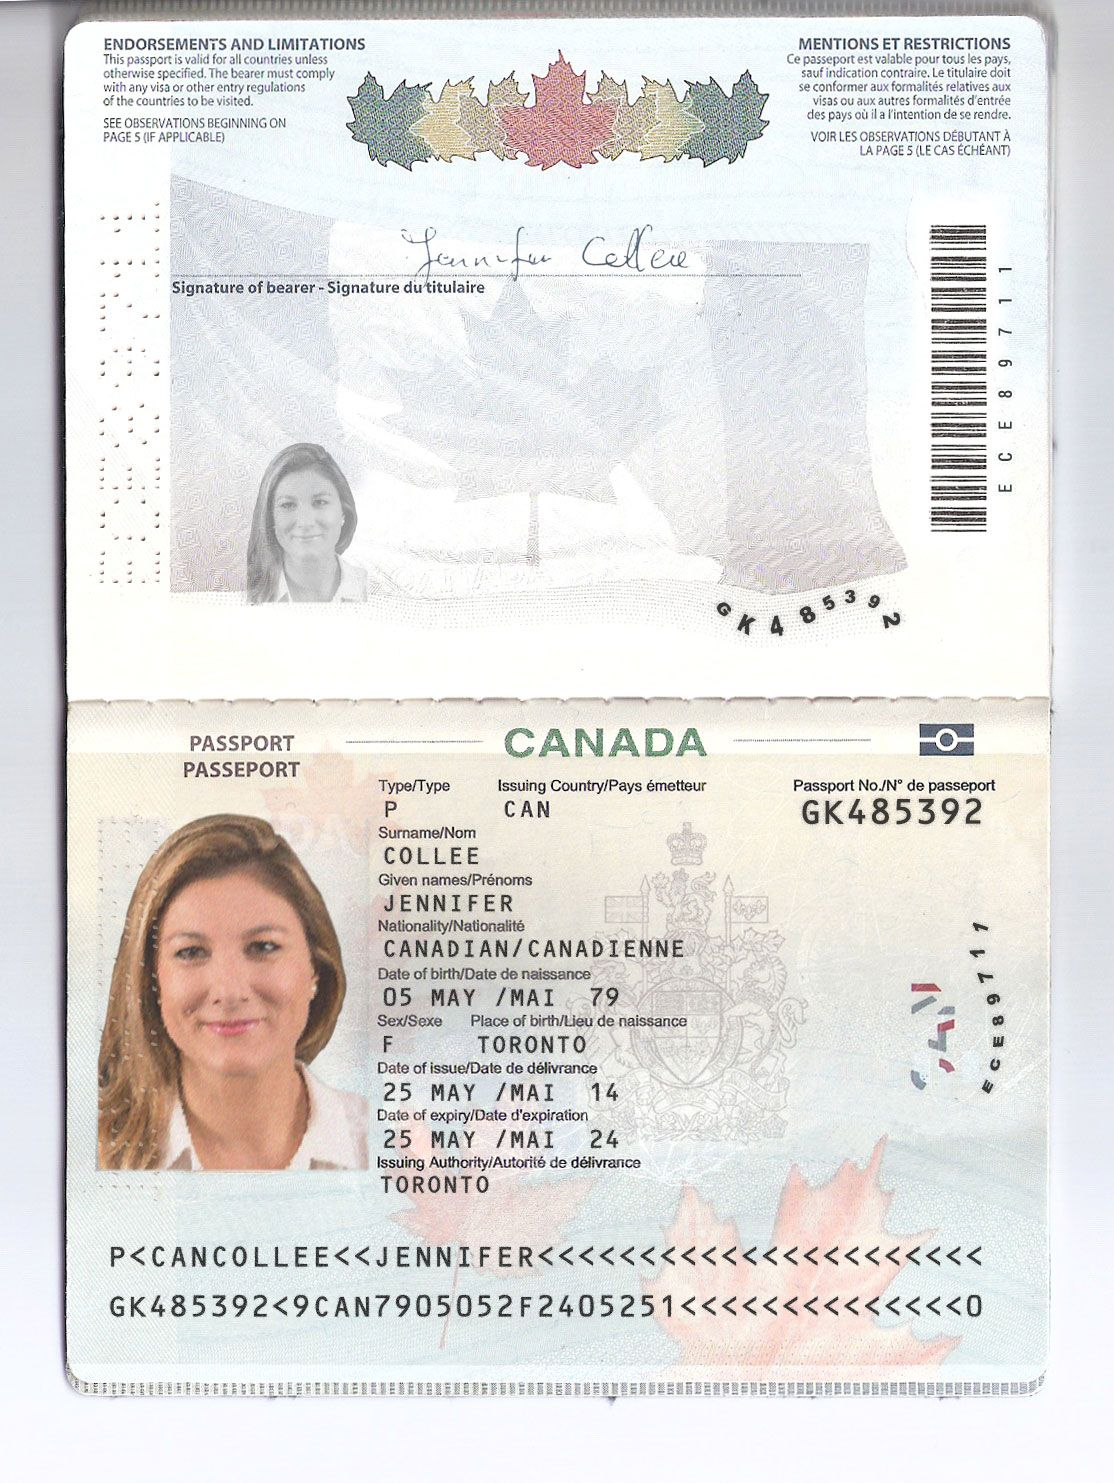 CANADA PASSPORT download link https://satoshibox.com ...